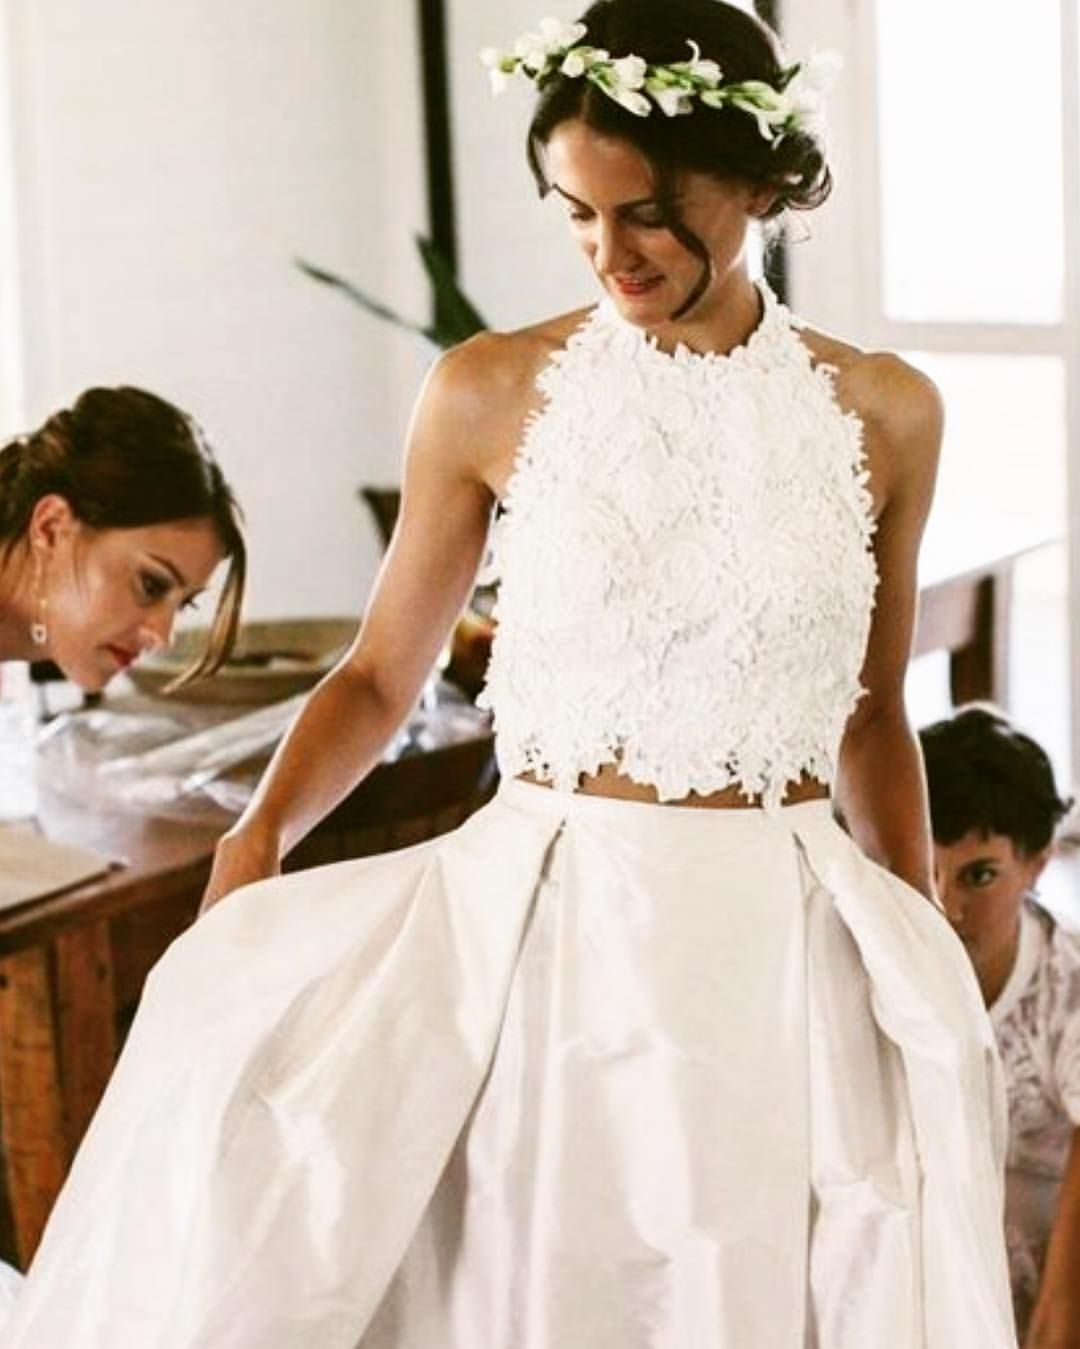 Piece Wedding Dress With Pockets All About The Details Way